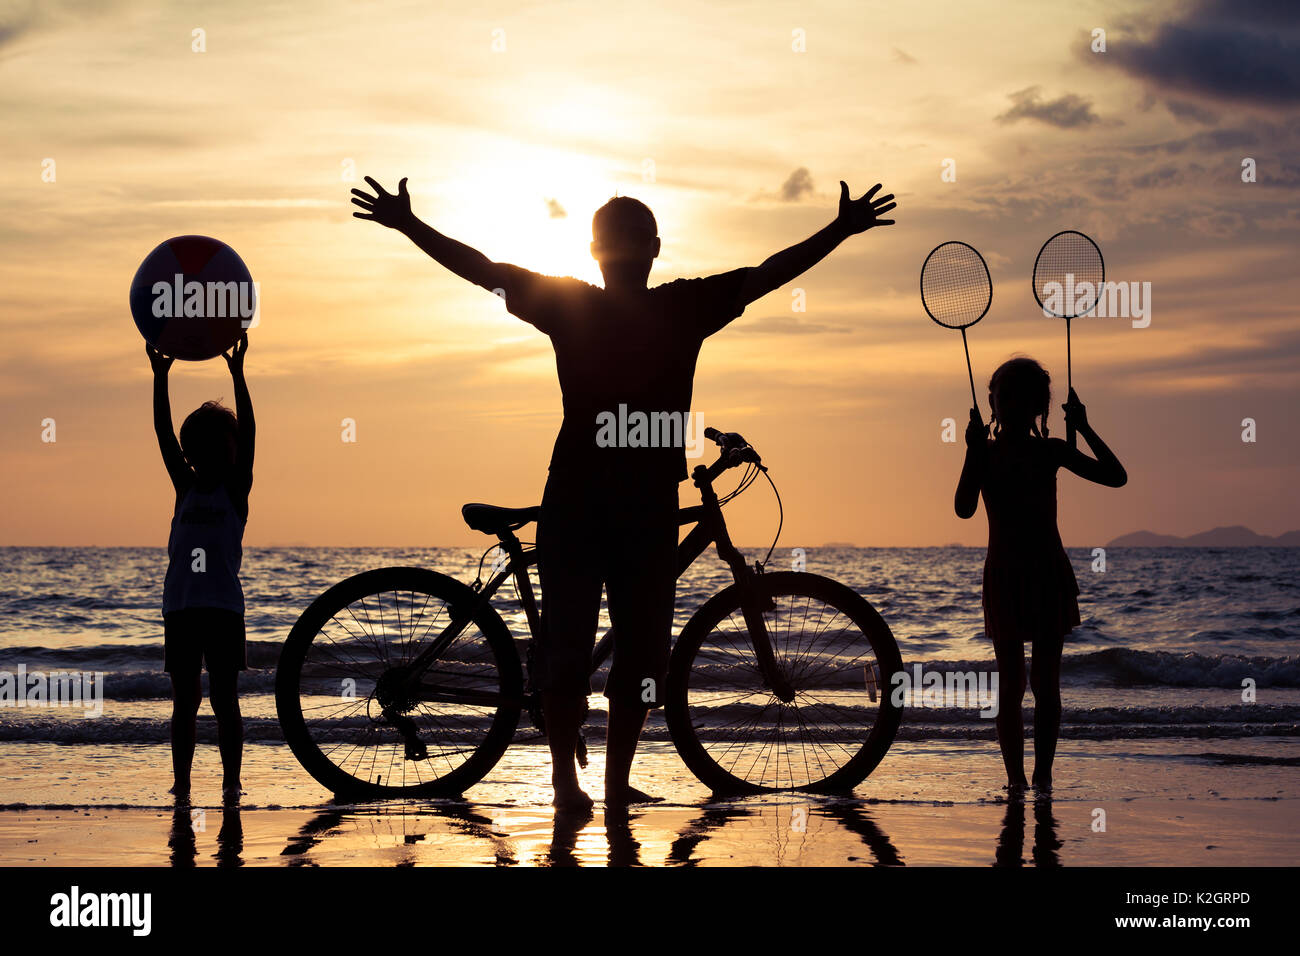 Father and children playing on the beach at the sunset time. Concept of happy friendly family. - Stock Image